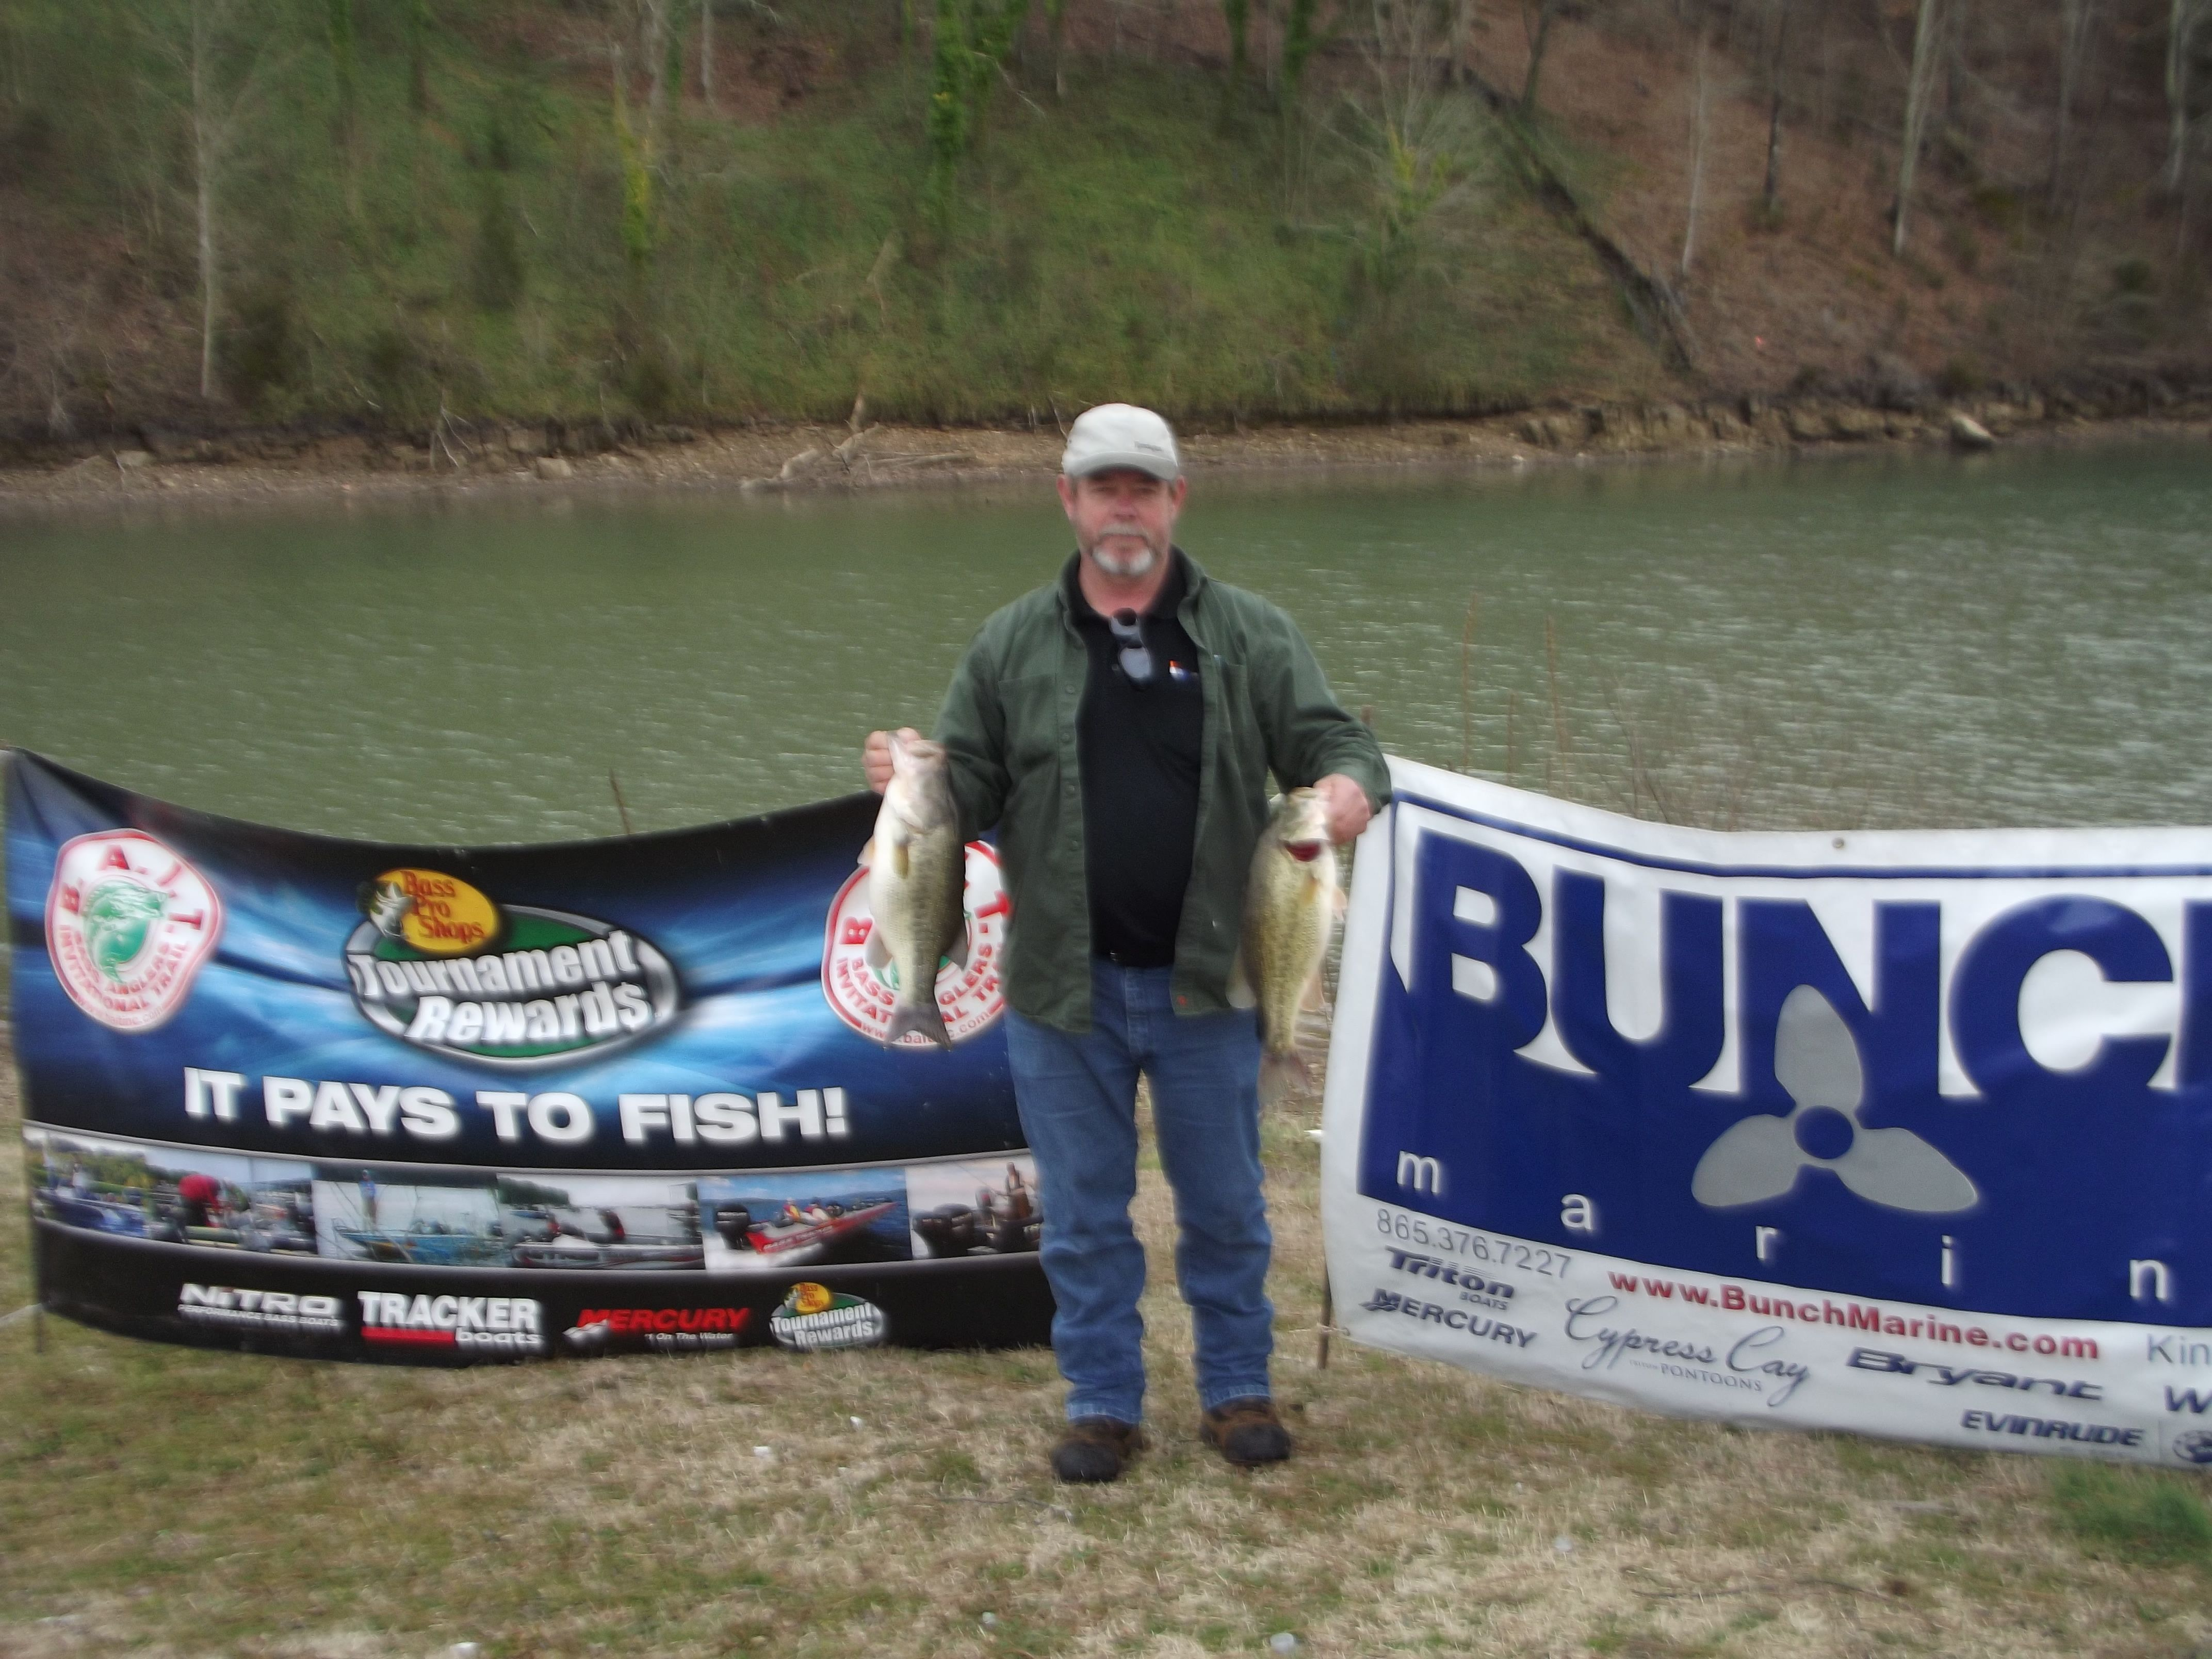 Jerry's Bait Shop Rockwood TN http://tnfishingreport.com/tournaments-and-results/tournament-results/bait-tn-ii-chickamauga-2-23-13/